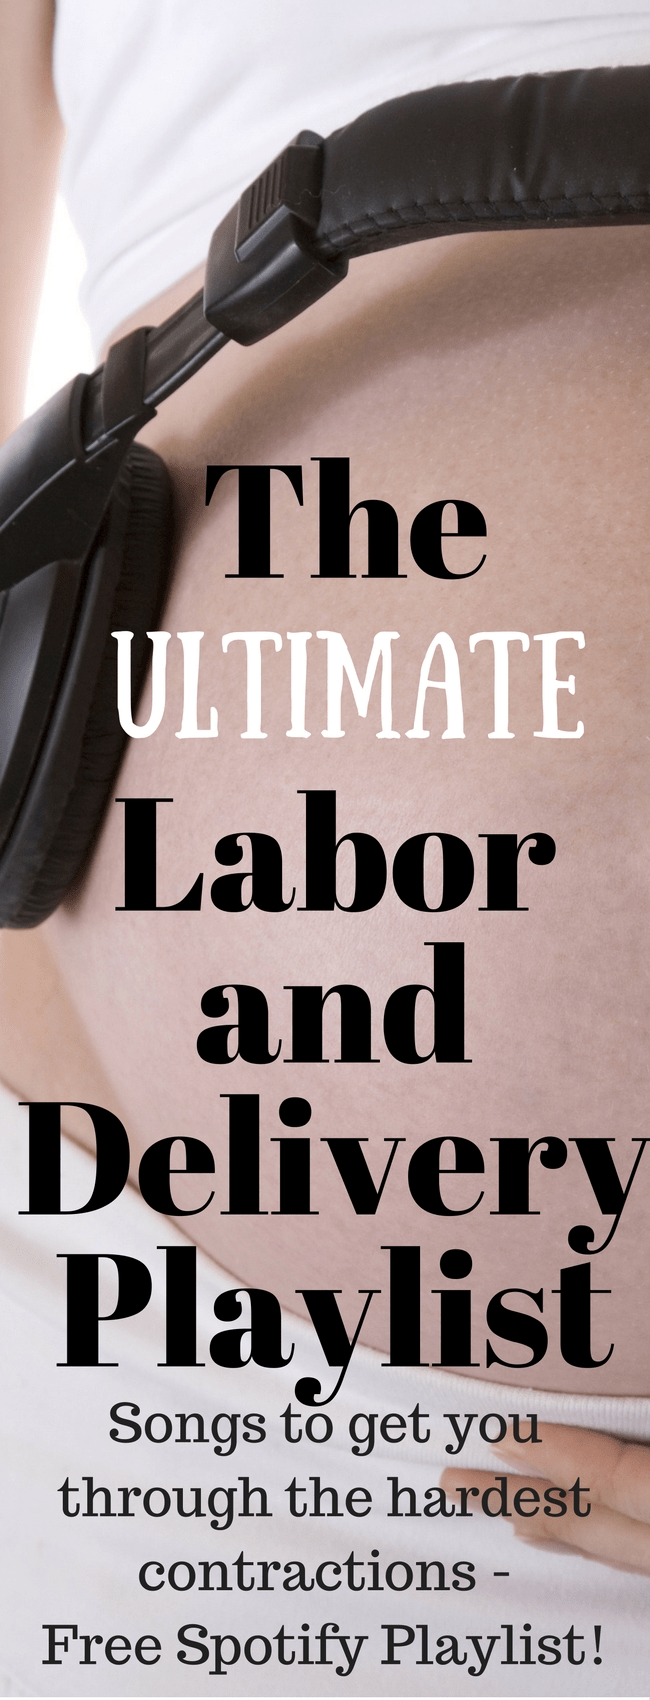 labor-and-delivery-playlist